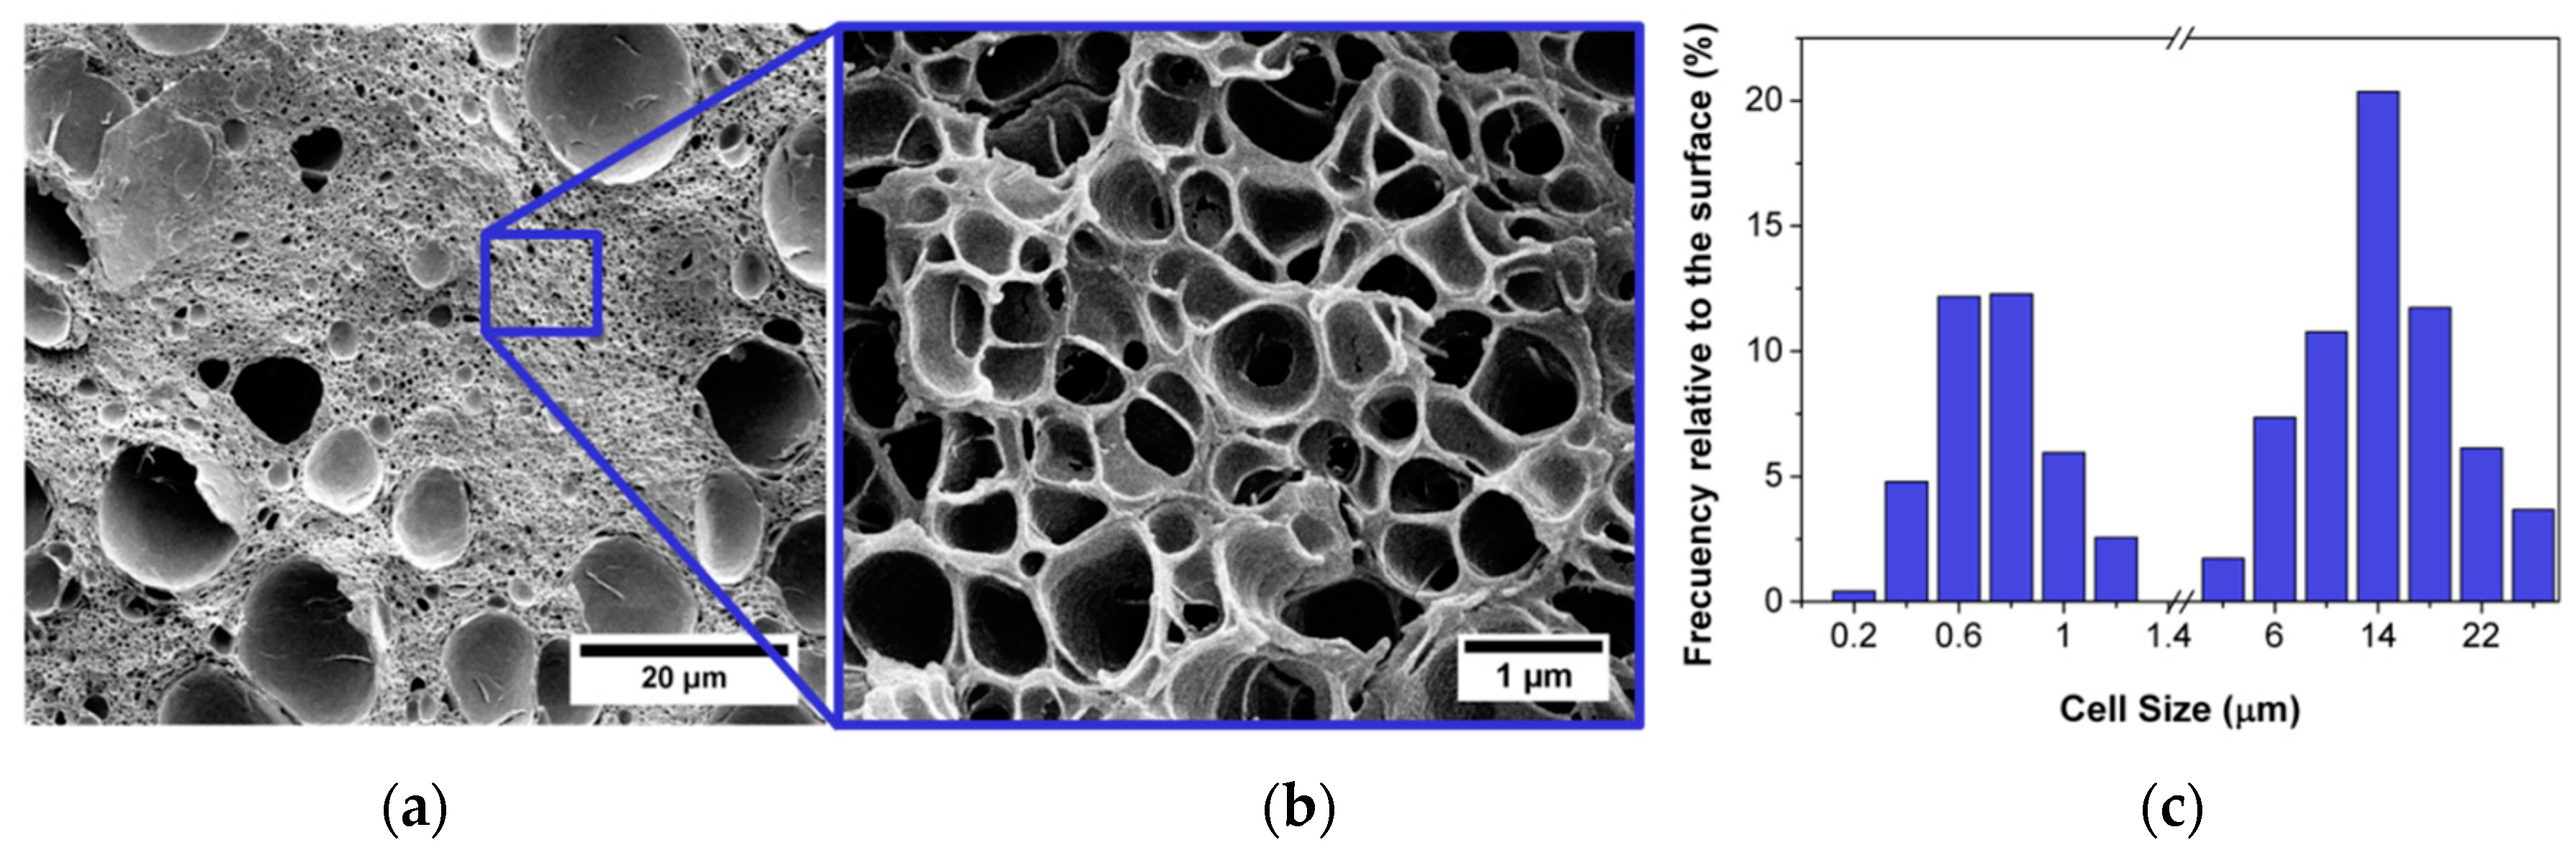 Materials | Free Full-Text | Nanocellular Polymers: The Challenge of